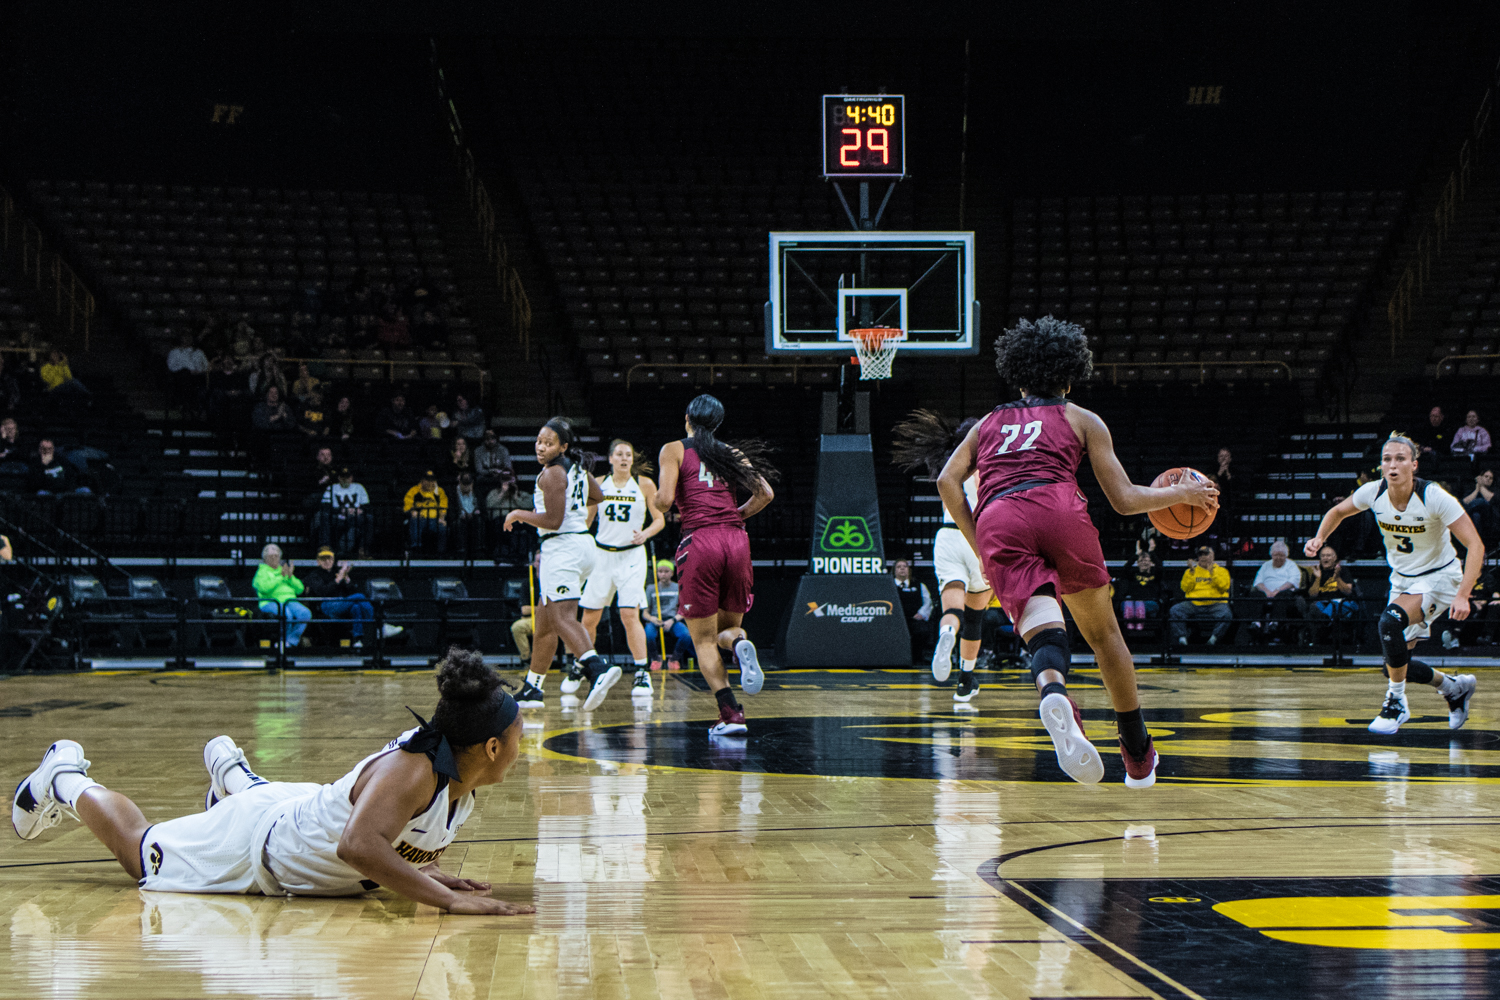 NC+Central+guard+Zaria+Atkins+dribbles+the+ball+during+a+women%27s+basketball+game+between+Iowa+and+North+Carolina+Central+at+Carver-Hawkeye+Arena+on+Saturday%2C+Nov.+17%2C+2018.+The+Hawkeyes+devastated+the+visiting+Eagles%2C+106-39.